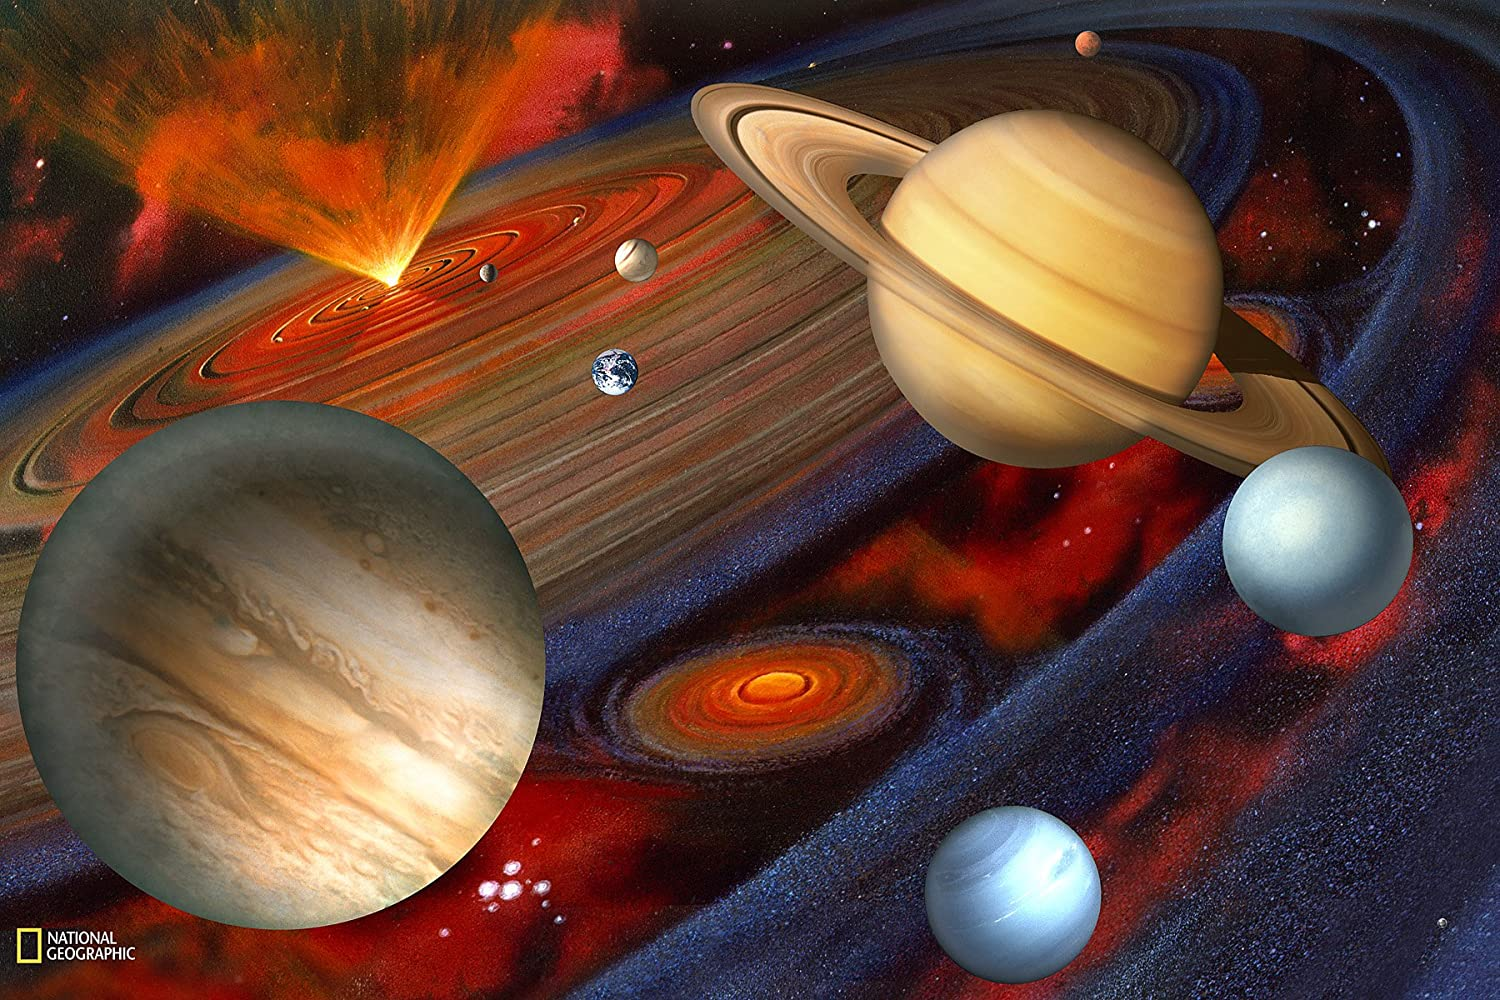 brewster national geographic kids ng94613 planets wall mural 72 brewster national geographic kids ng94613 planets wall mural 72 inch x 48 inch space decals amazon com